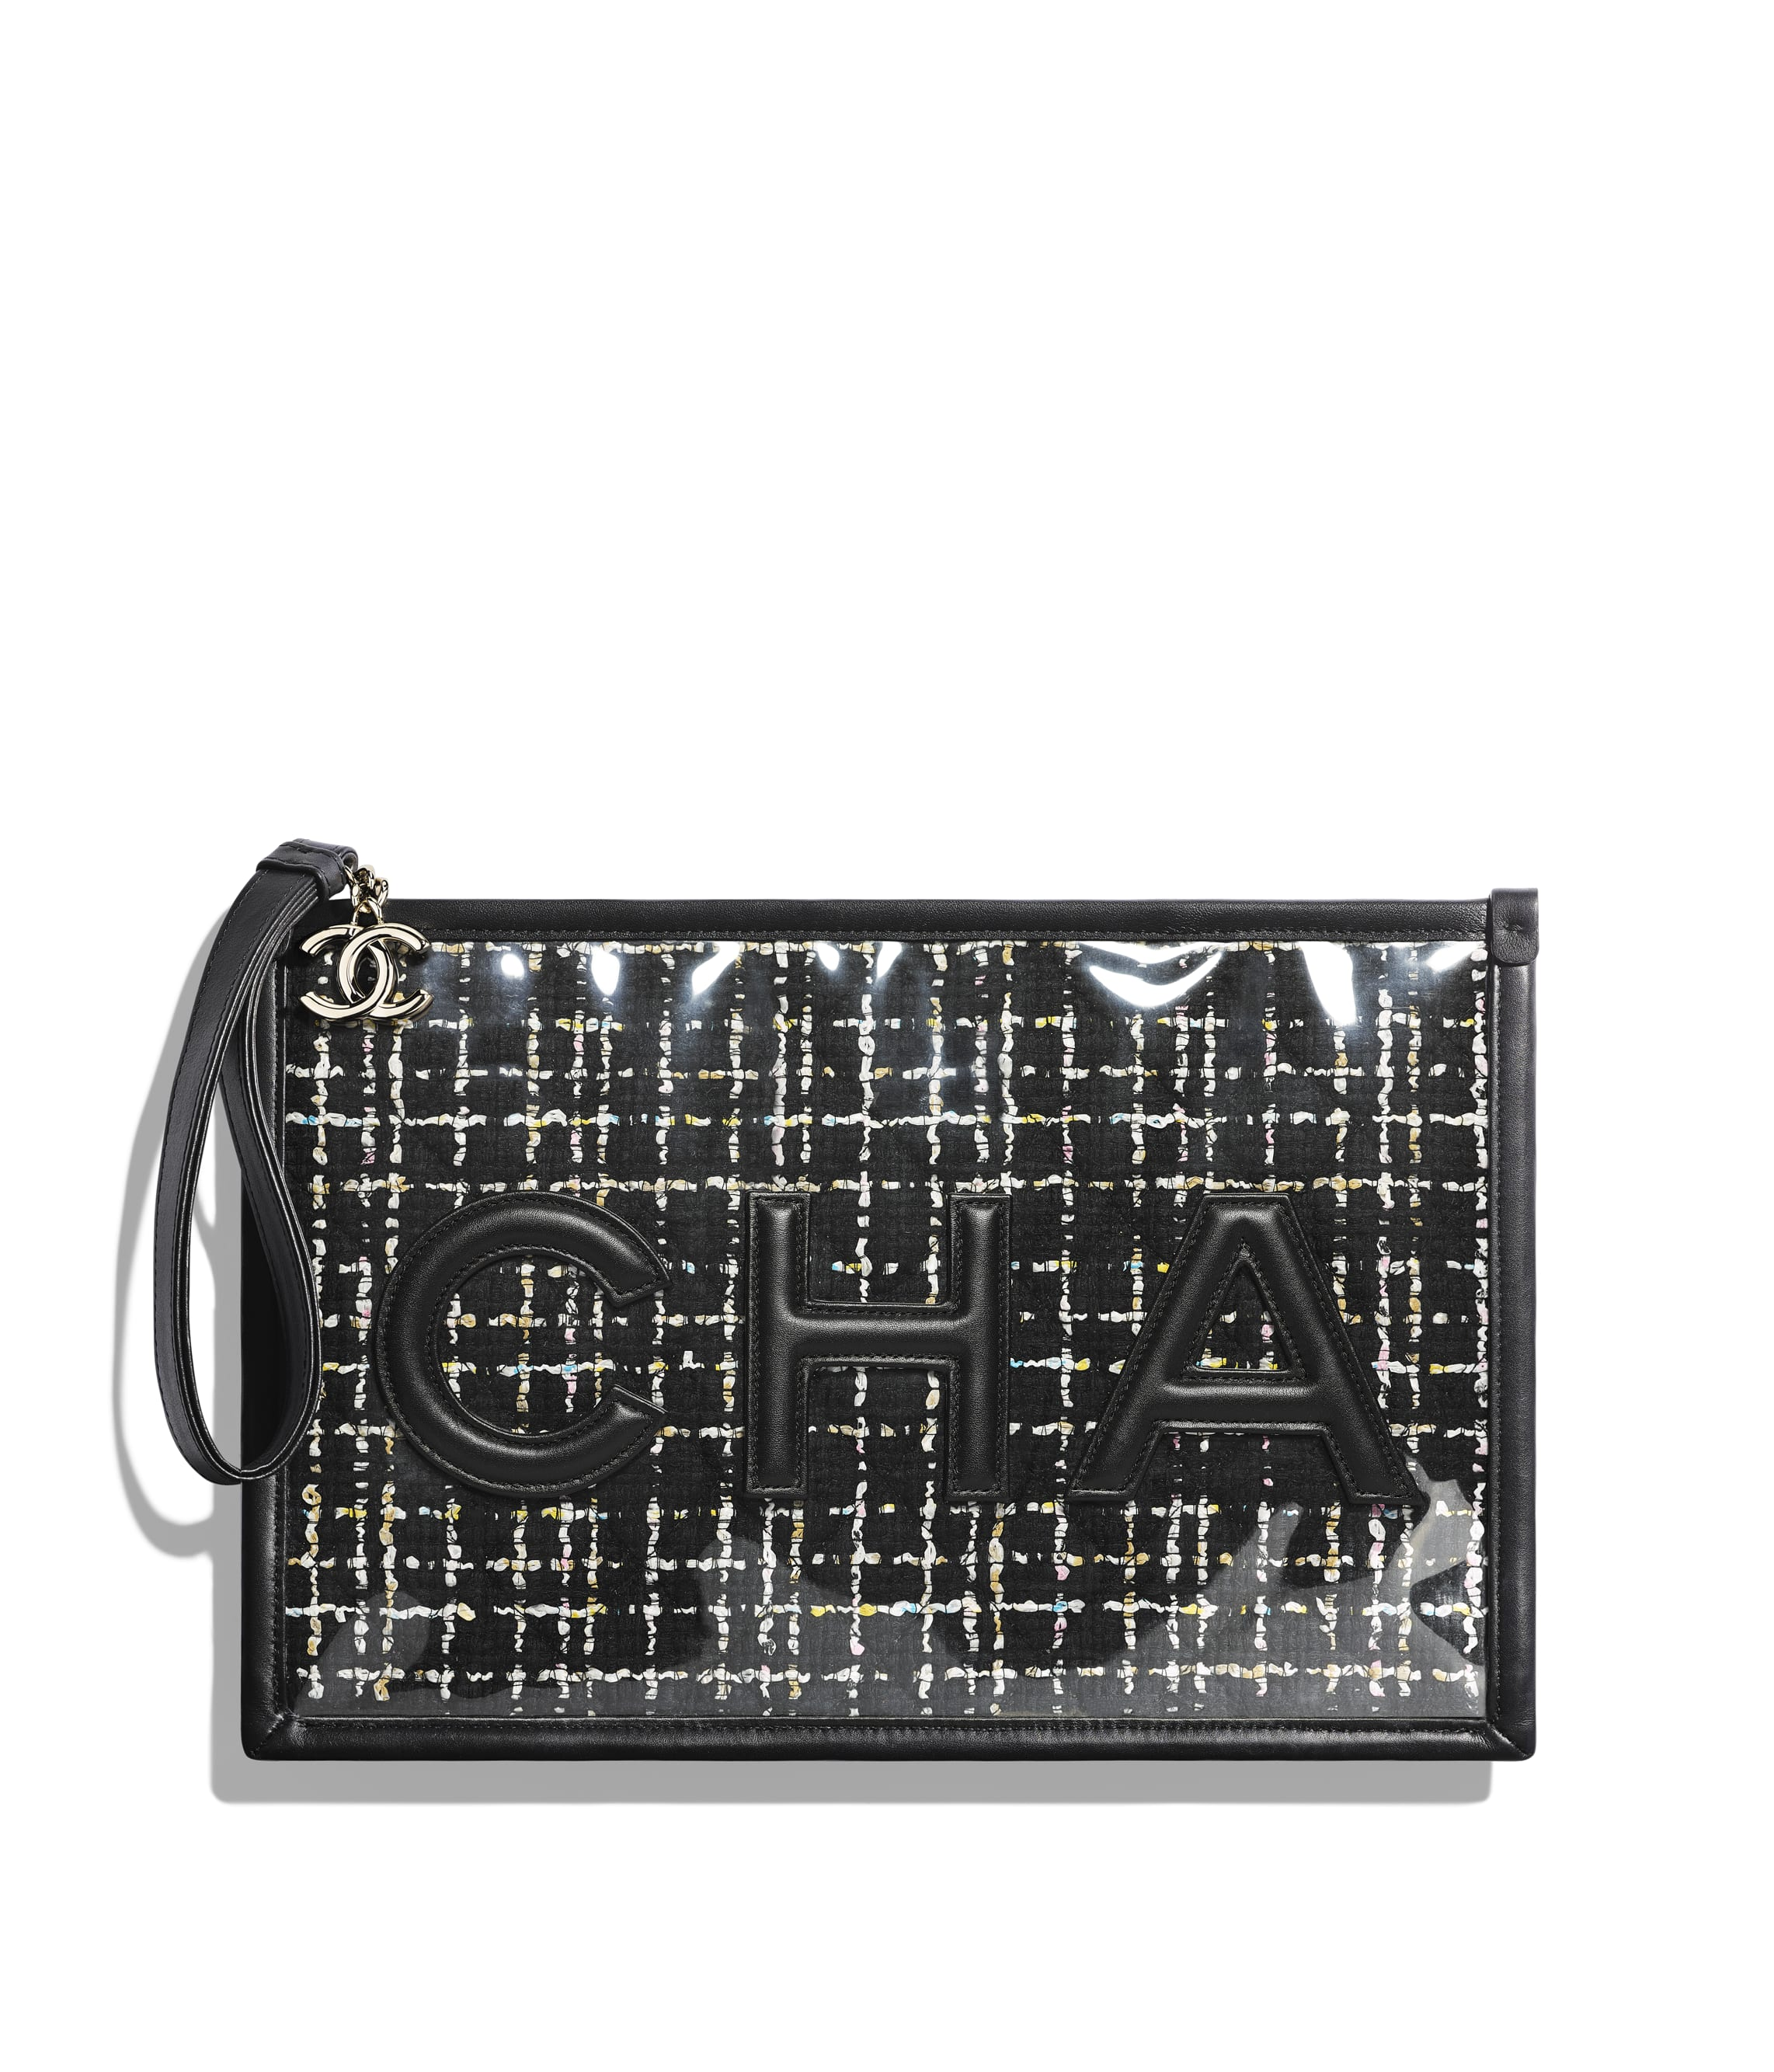 ce06f4bfe82a Pouches & Cases - Small Leather Goods - CHANEL